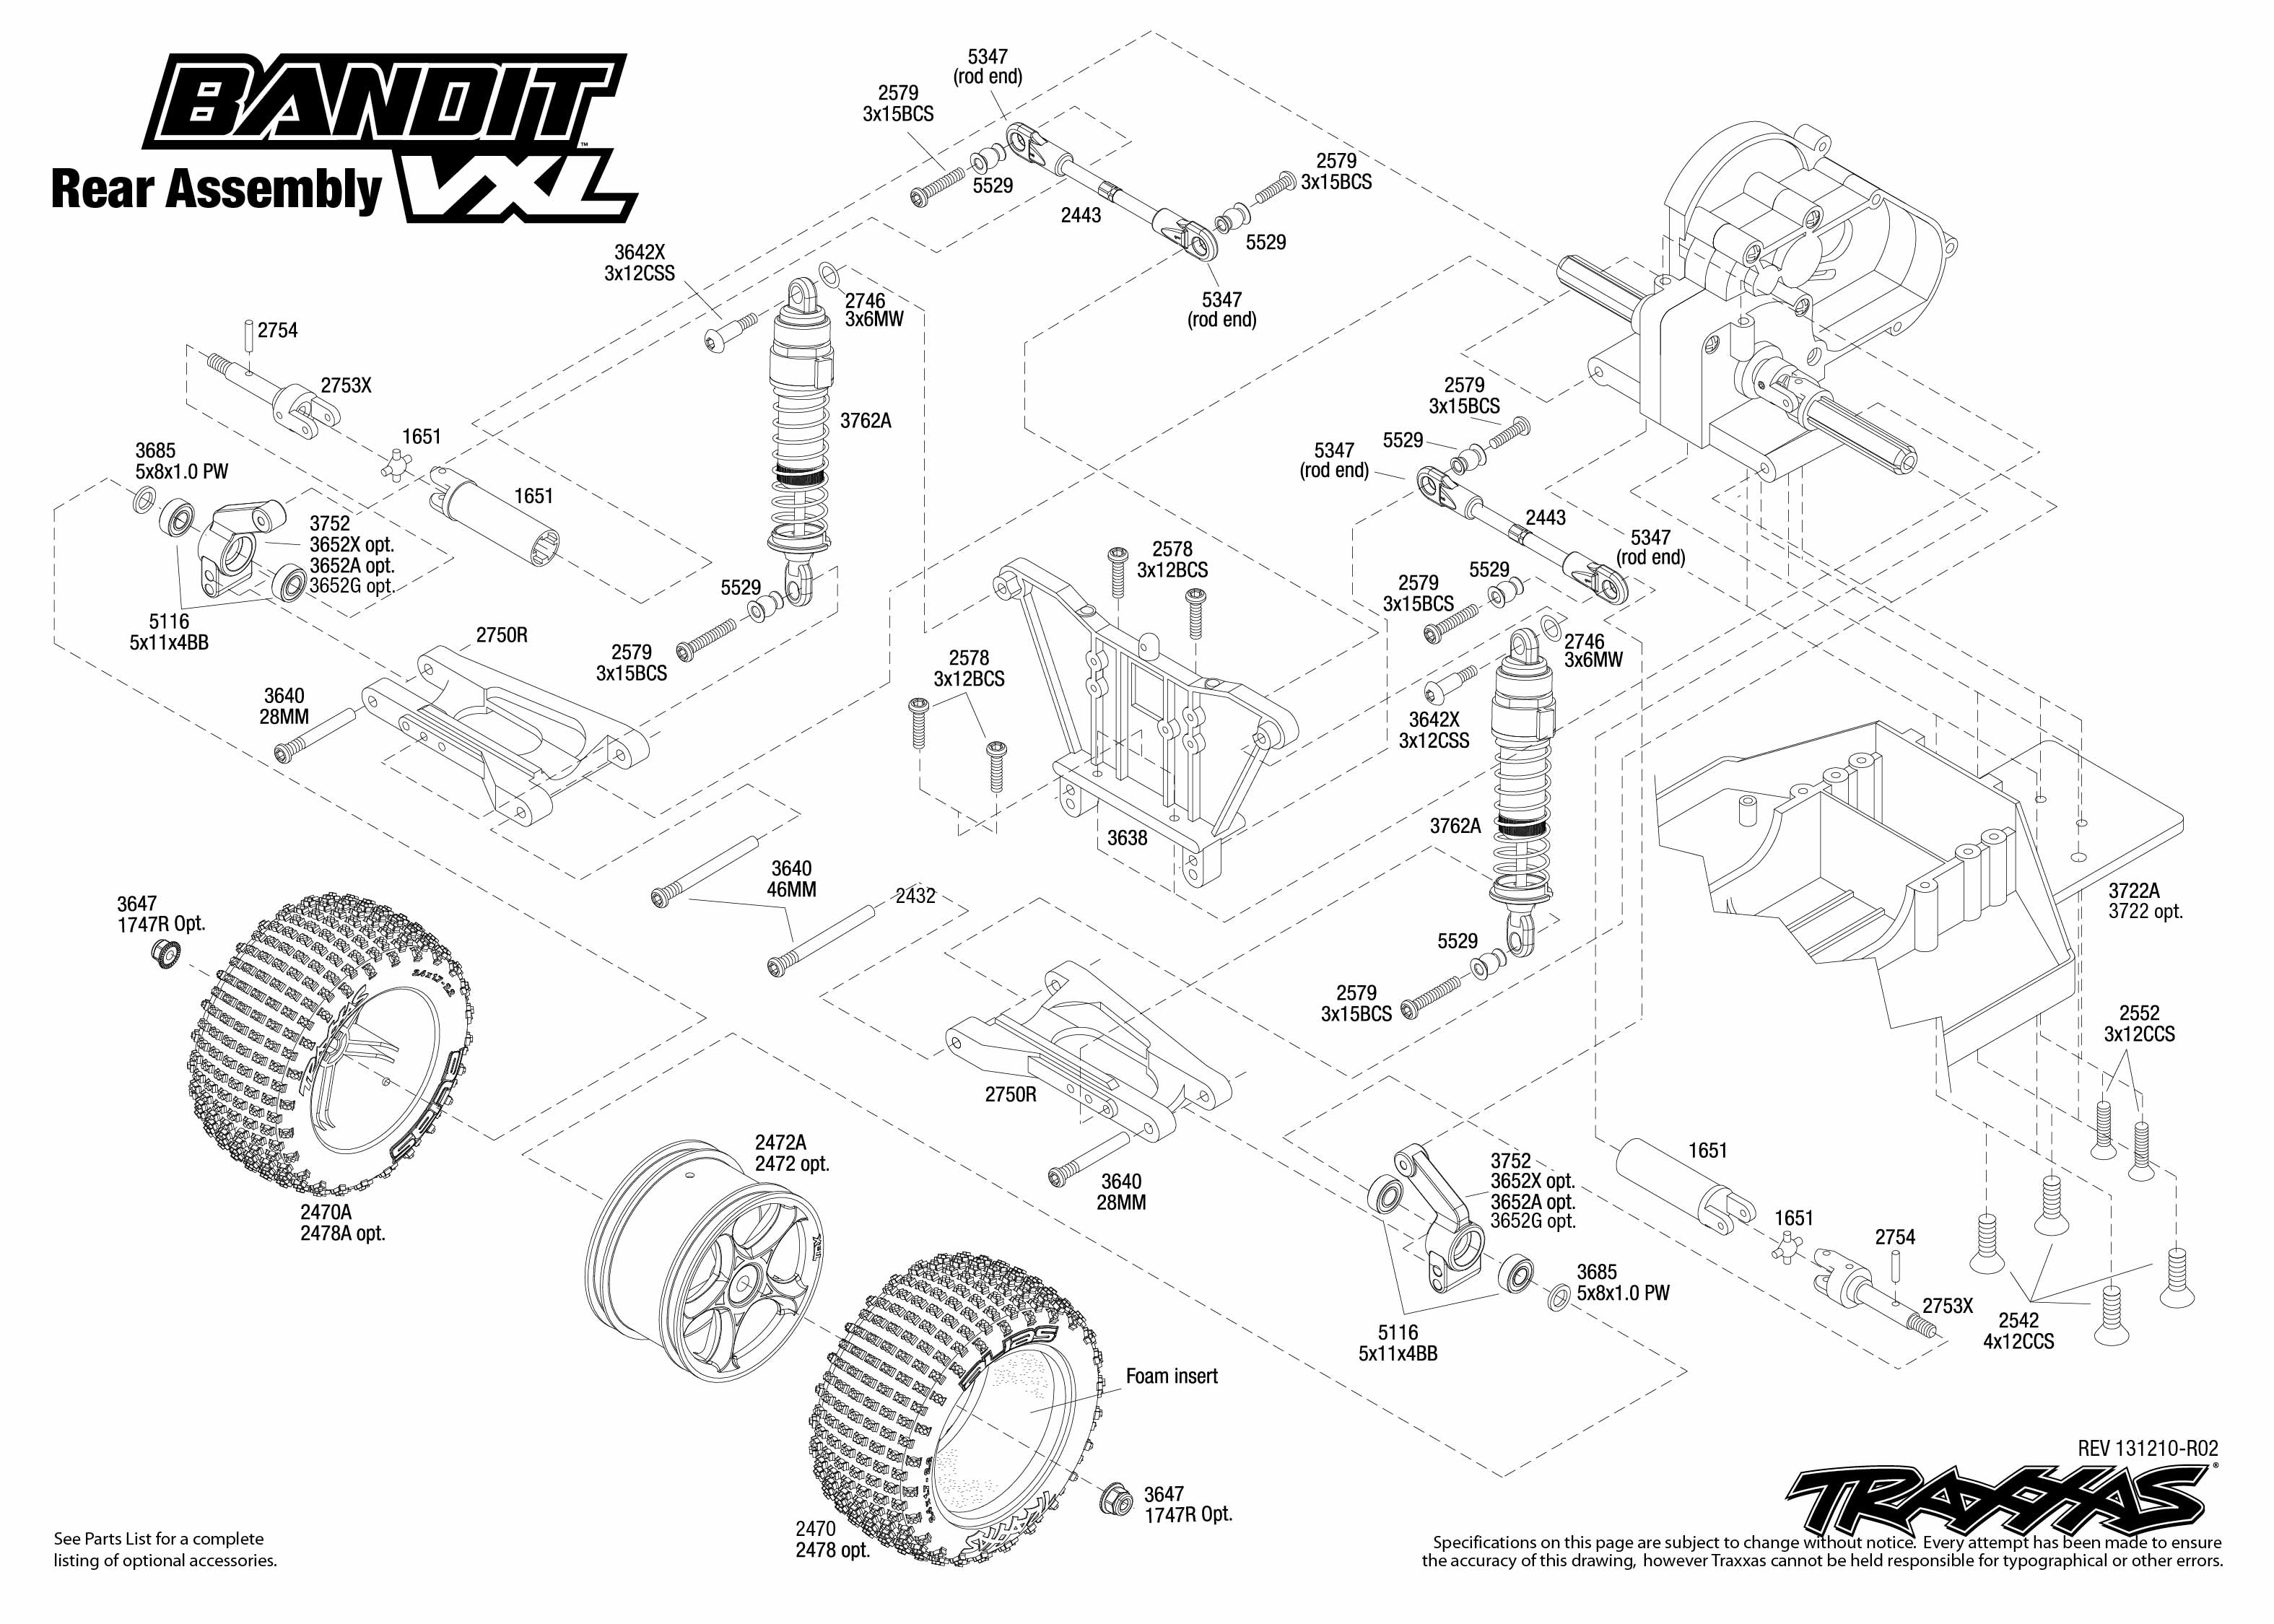 TRAXXAS RUSTLER VXL MANUAL EBOOK